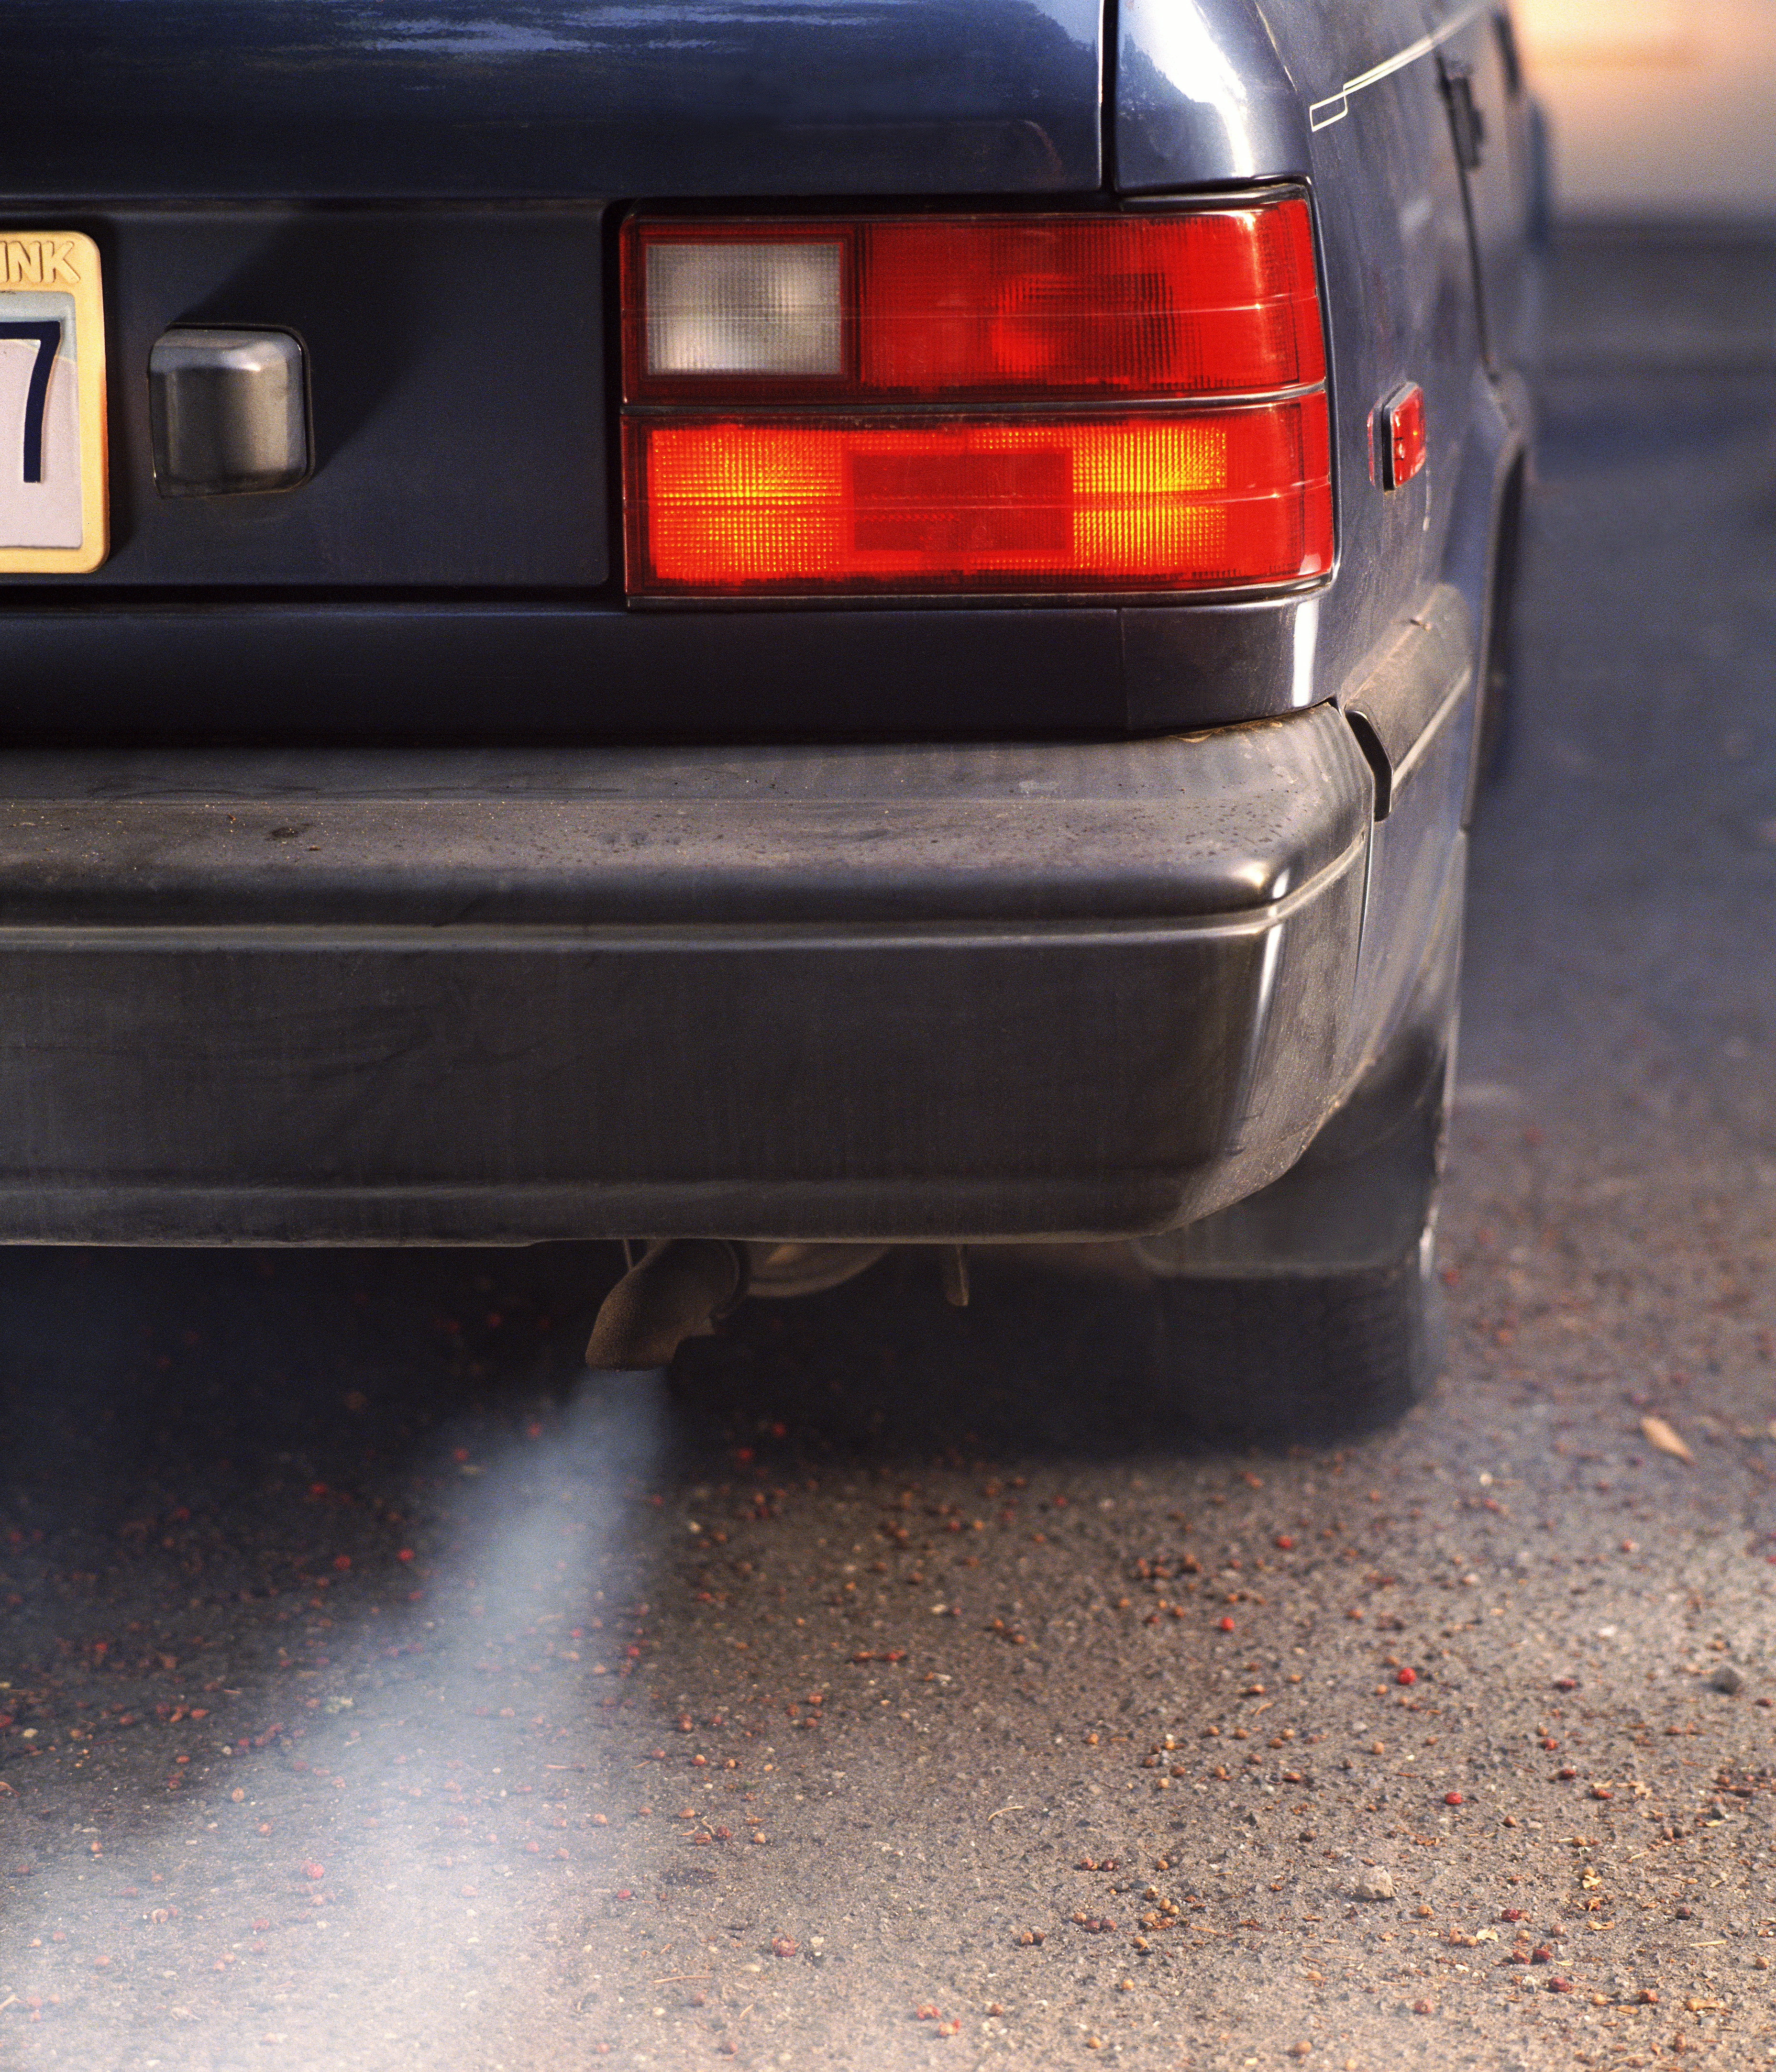 Heavy traffic can pollute the air with compounds that can contribute to ADHD